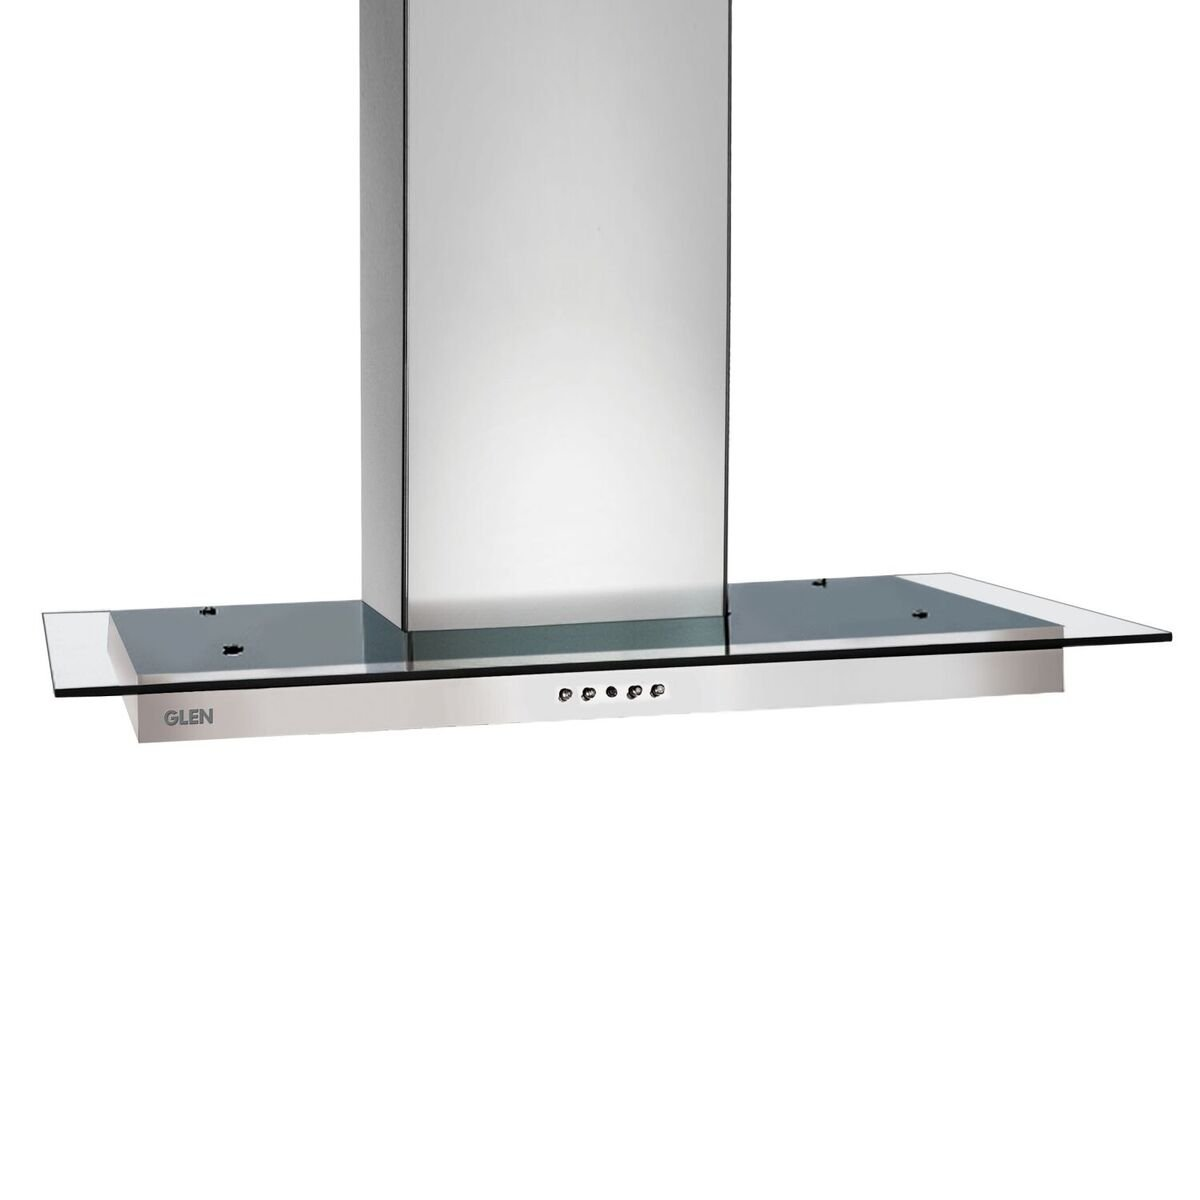 Glen 6062 Stainless Steel Kitchen Chimney